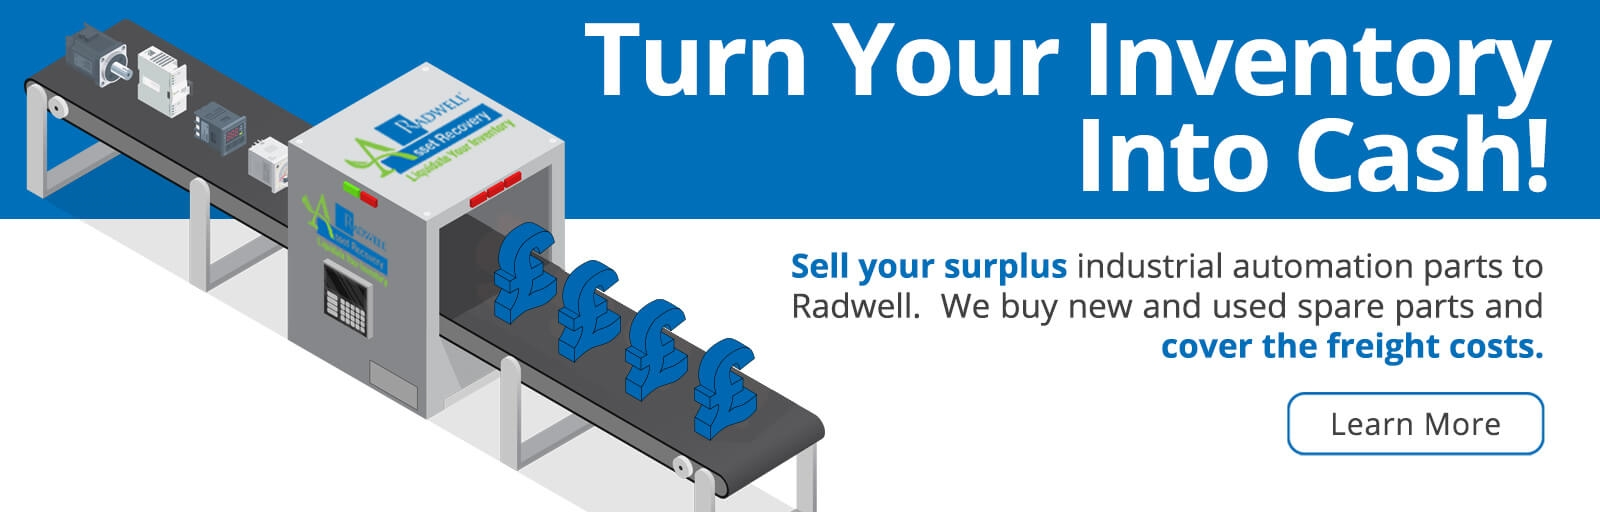 turn-your-inventory-into-cash